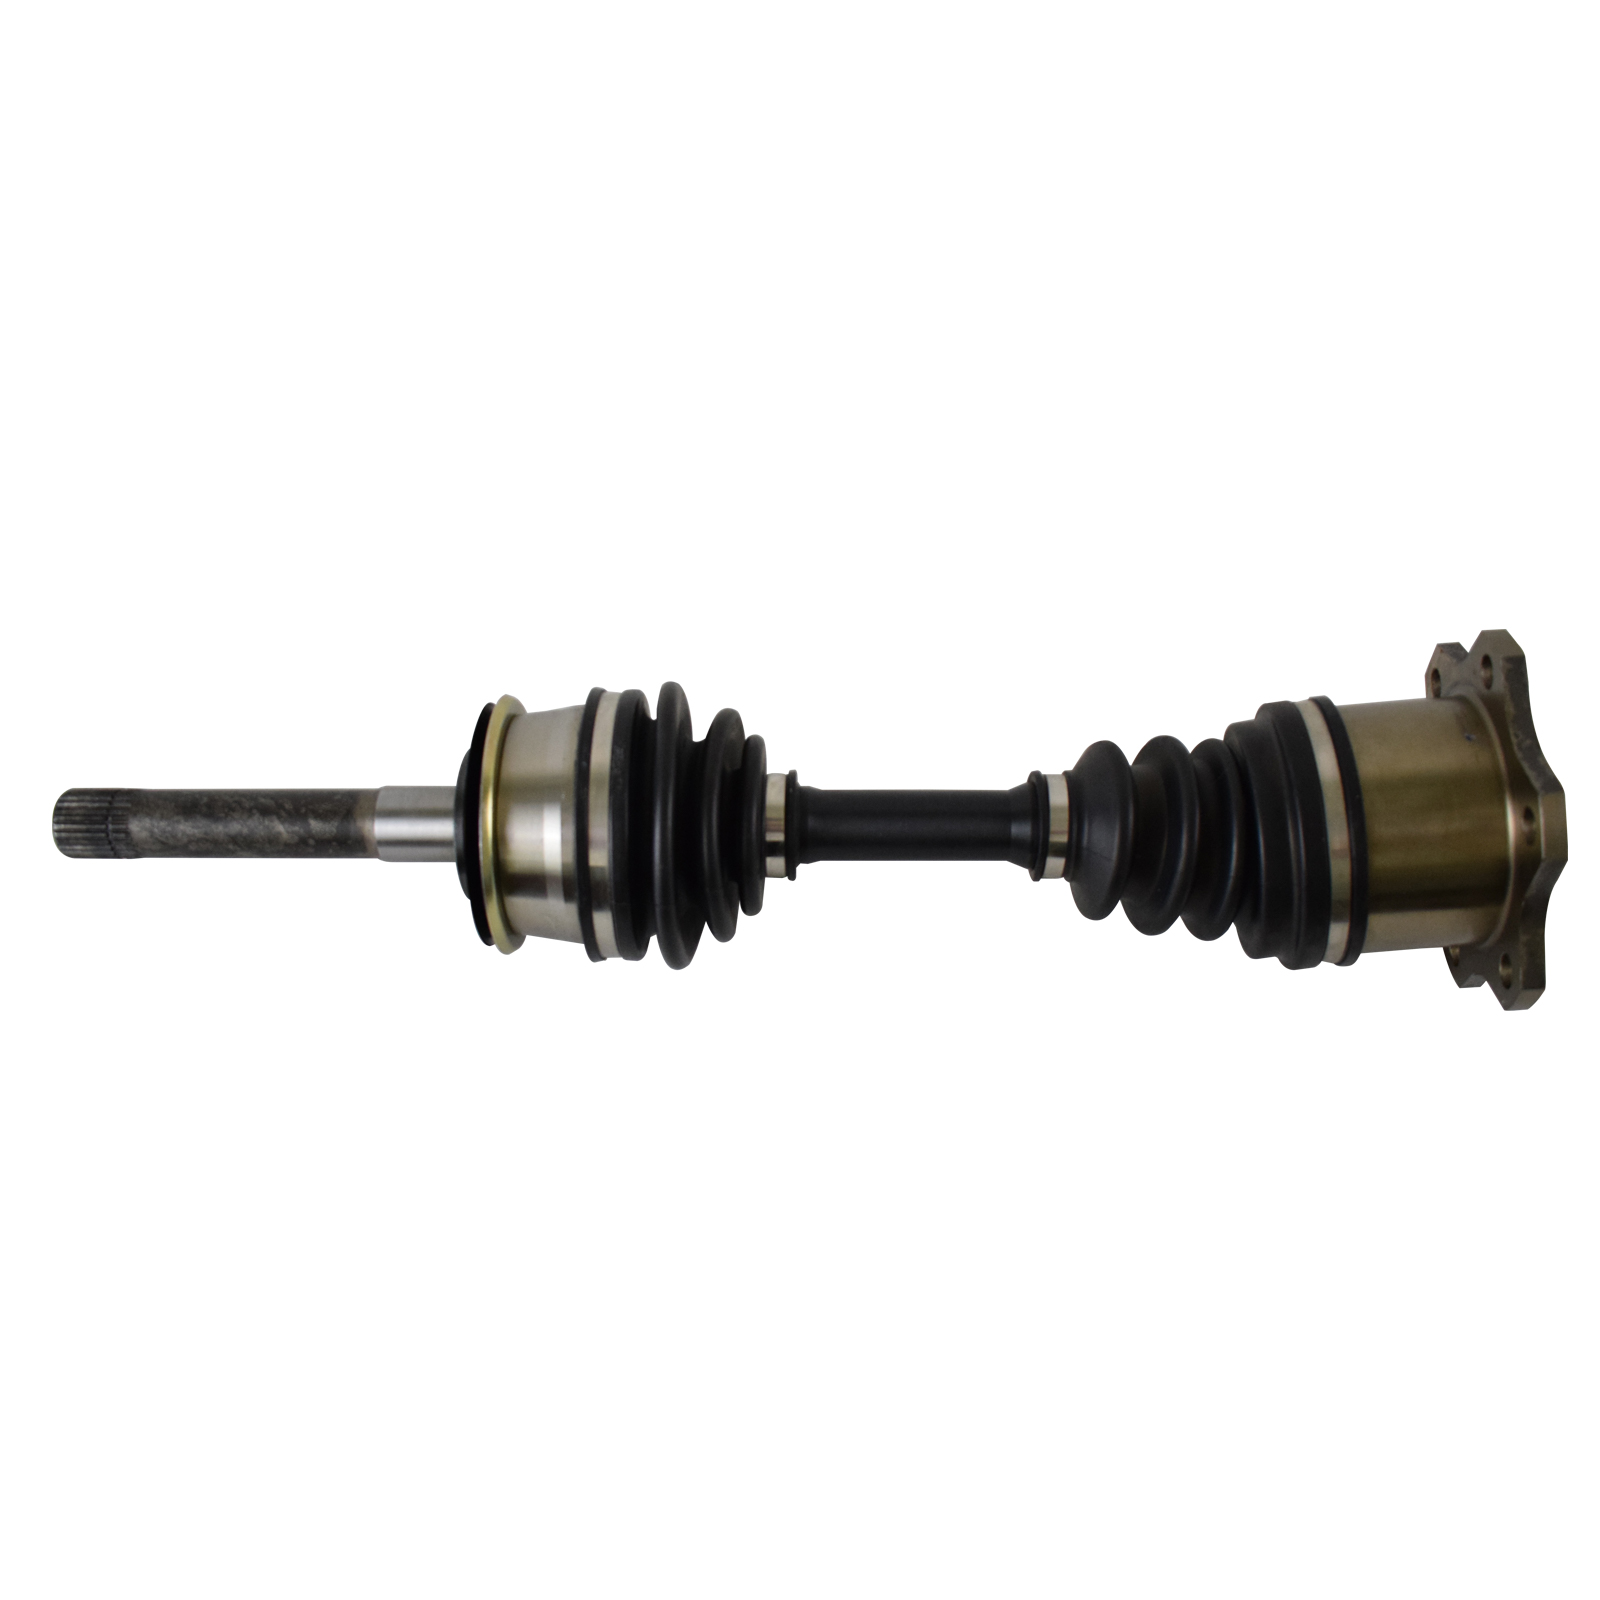 IFS Front Extended Axle Complete CV Joint Shaft Fit 4Runner Hilux Surf 88-05 image